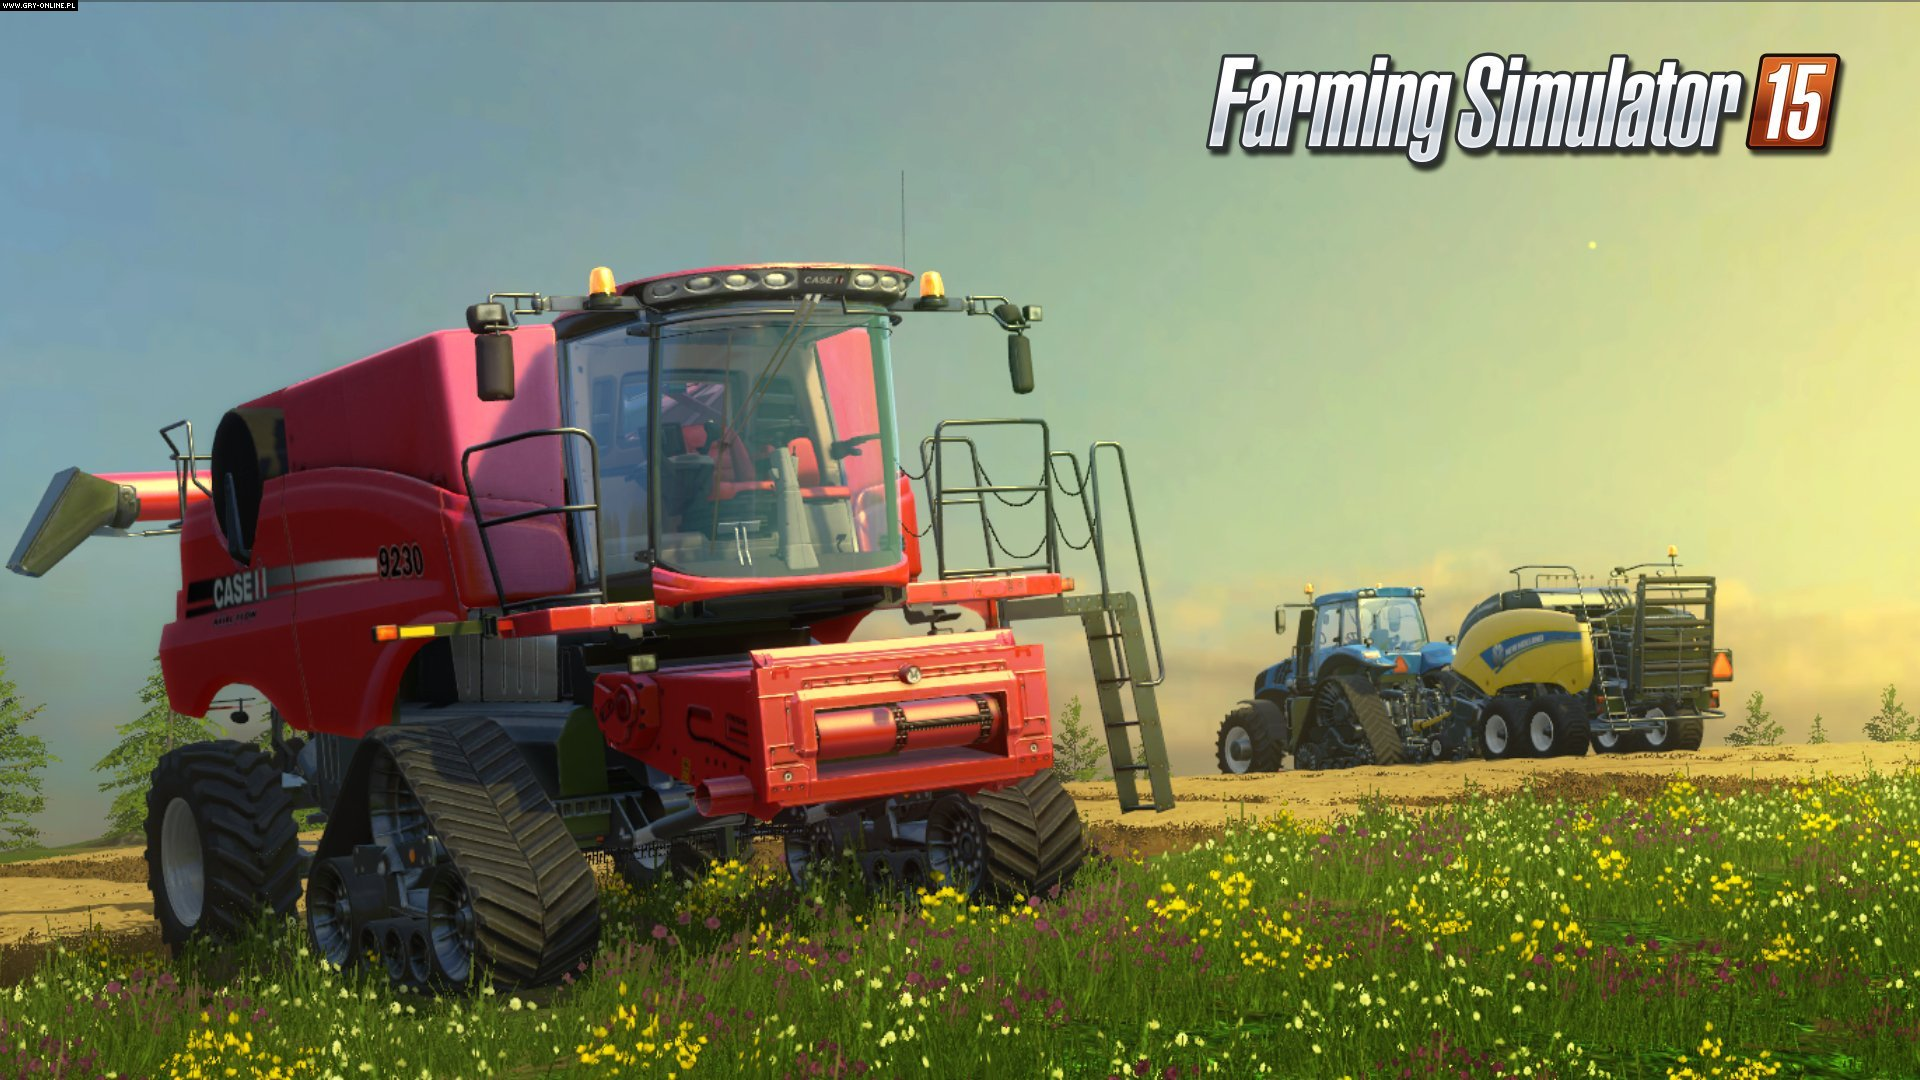 Farming Simulator 15 PC, X360, PS3, XONE, PS4 Games Image 3/14, GIANTS Software, Focus Home Interactive